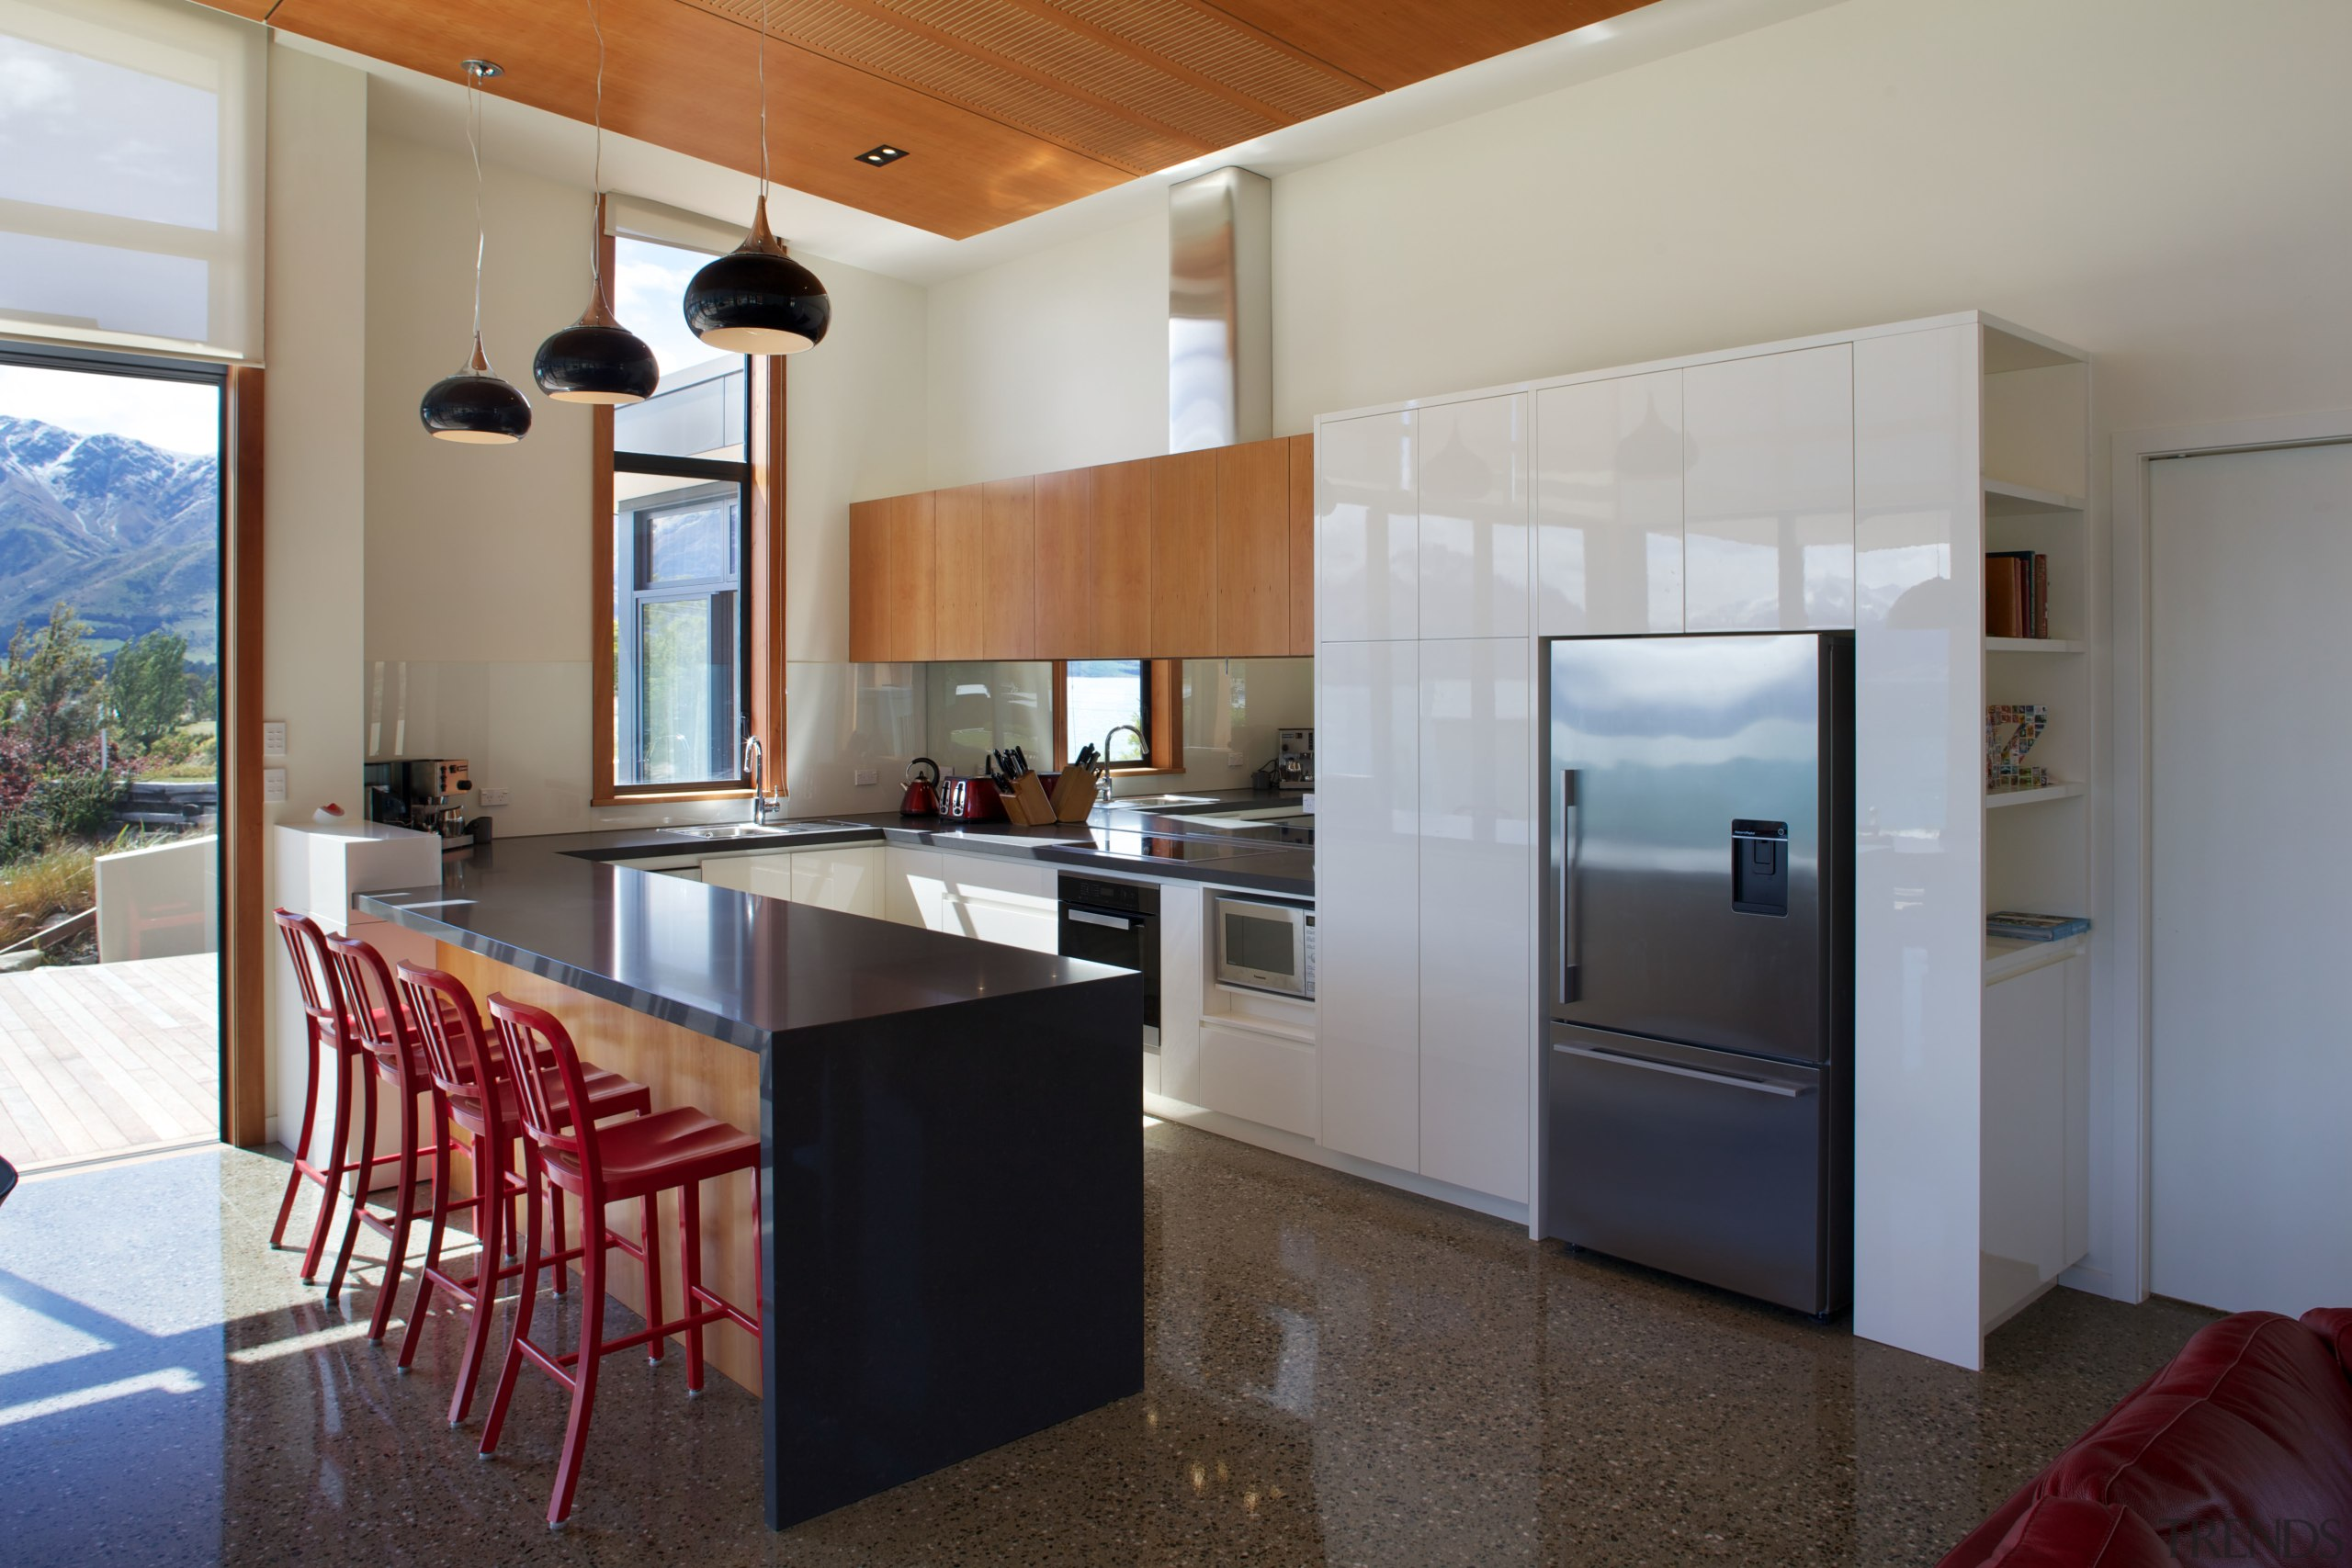 Southland beech timber, composite stone benchtops and a architecture, countertop, house, interior design, kitchen, real estate, gray